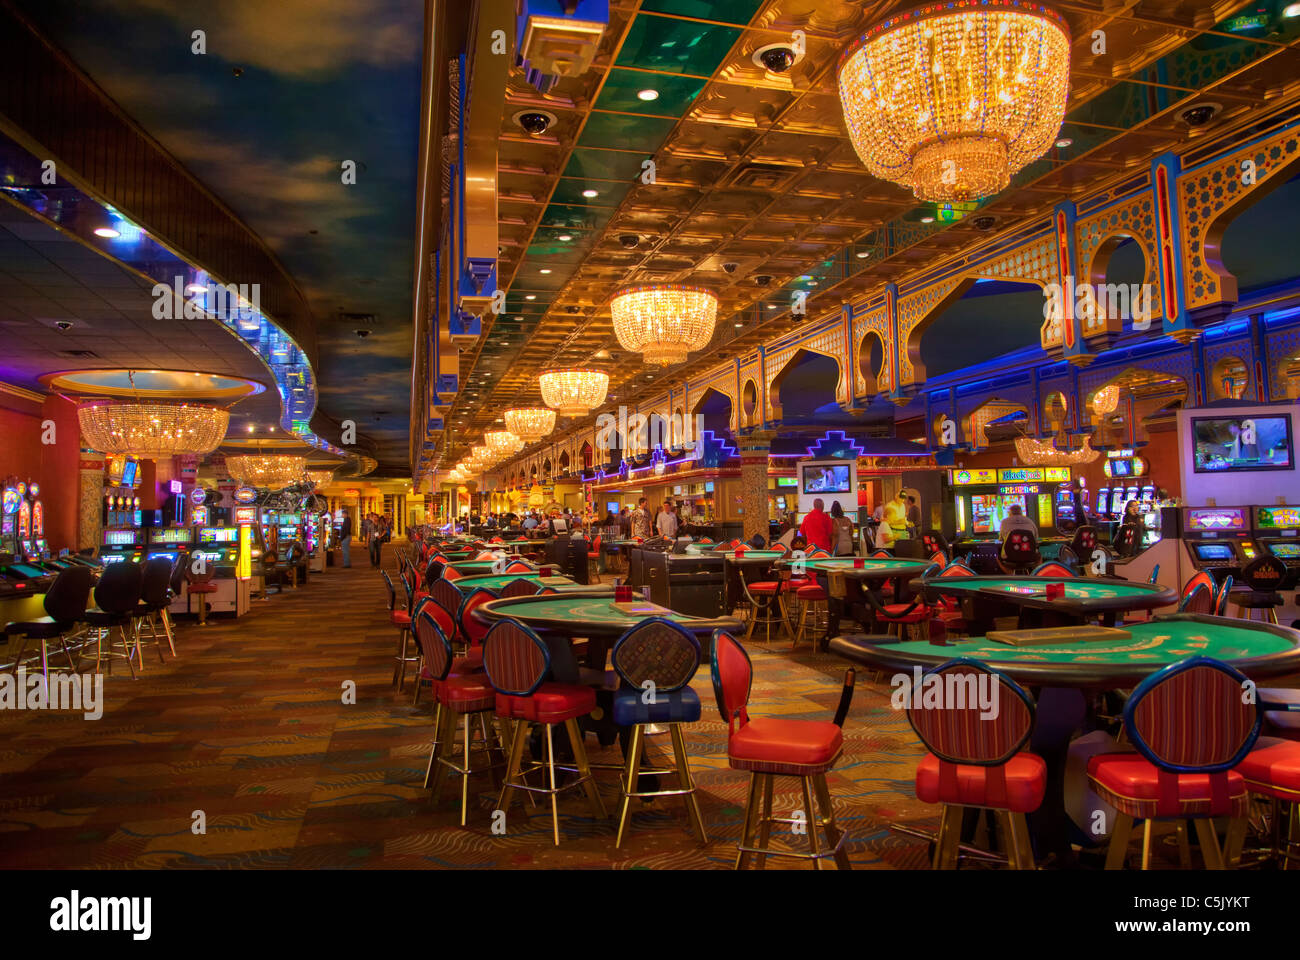 Sahara casino and hotel indian casino in the usa